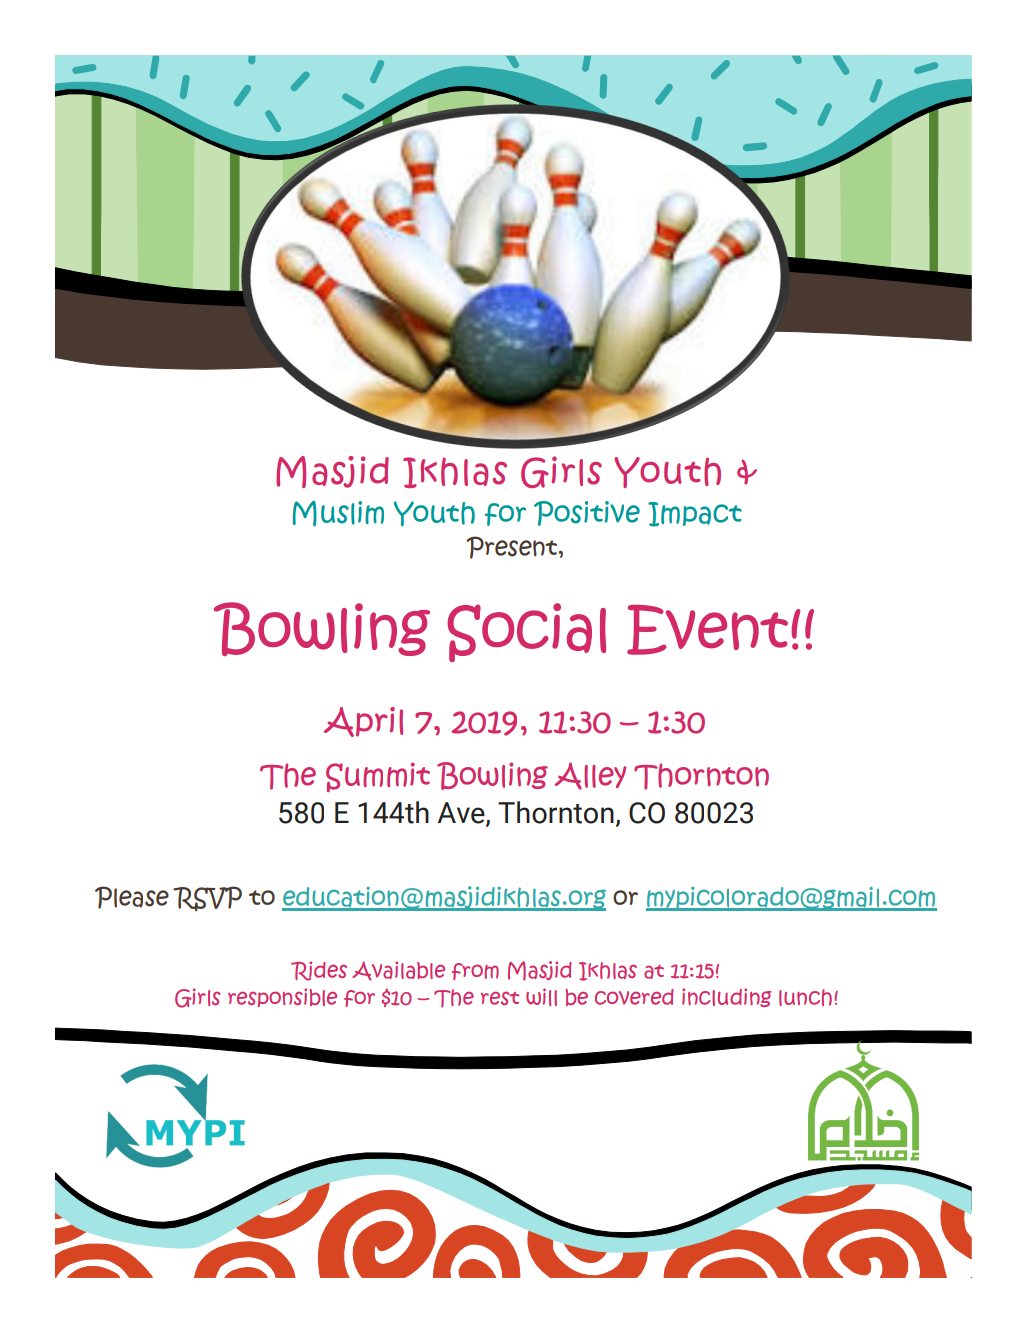 MYPI Bowling Social Event Flyer.png